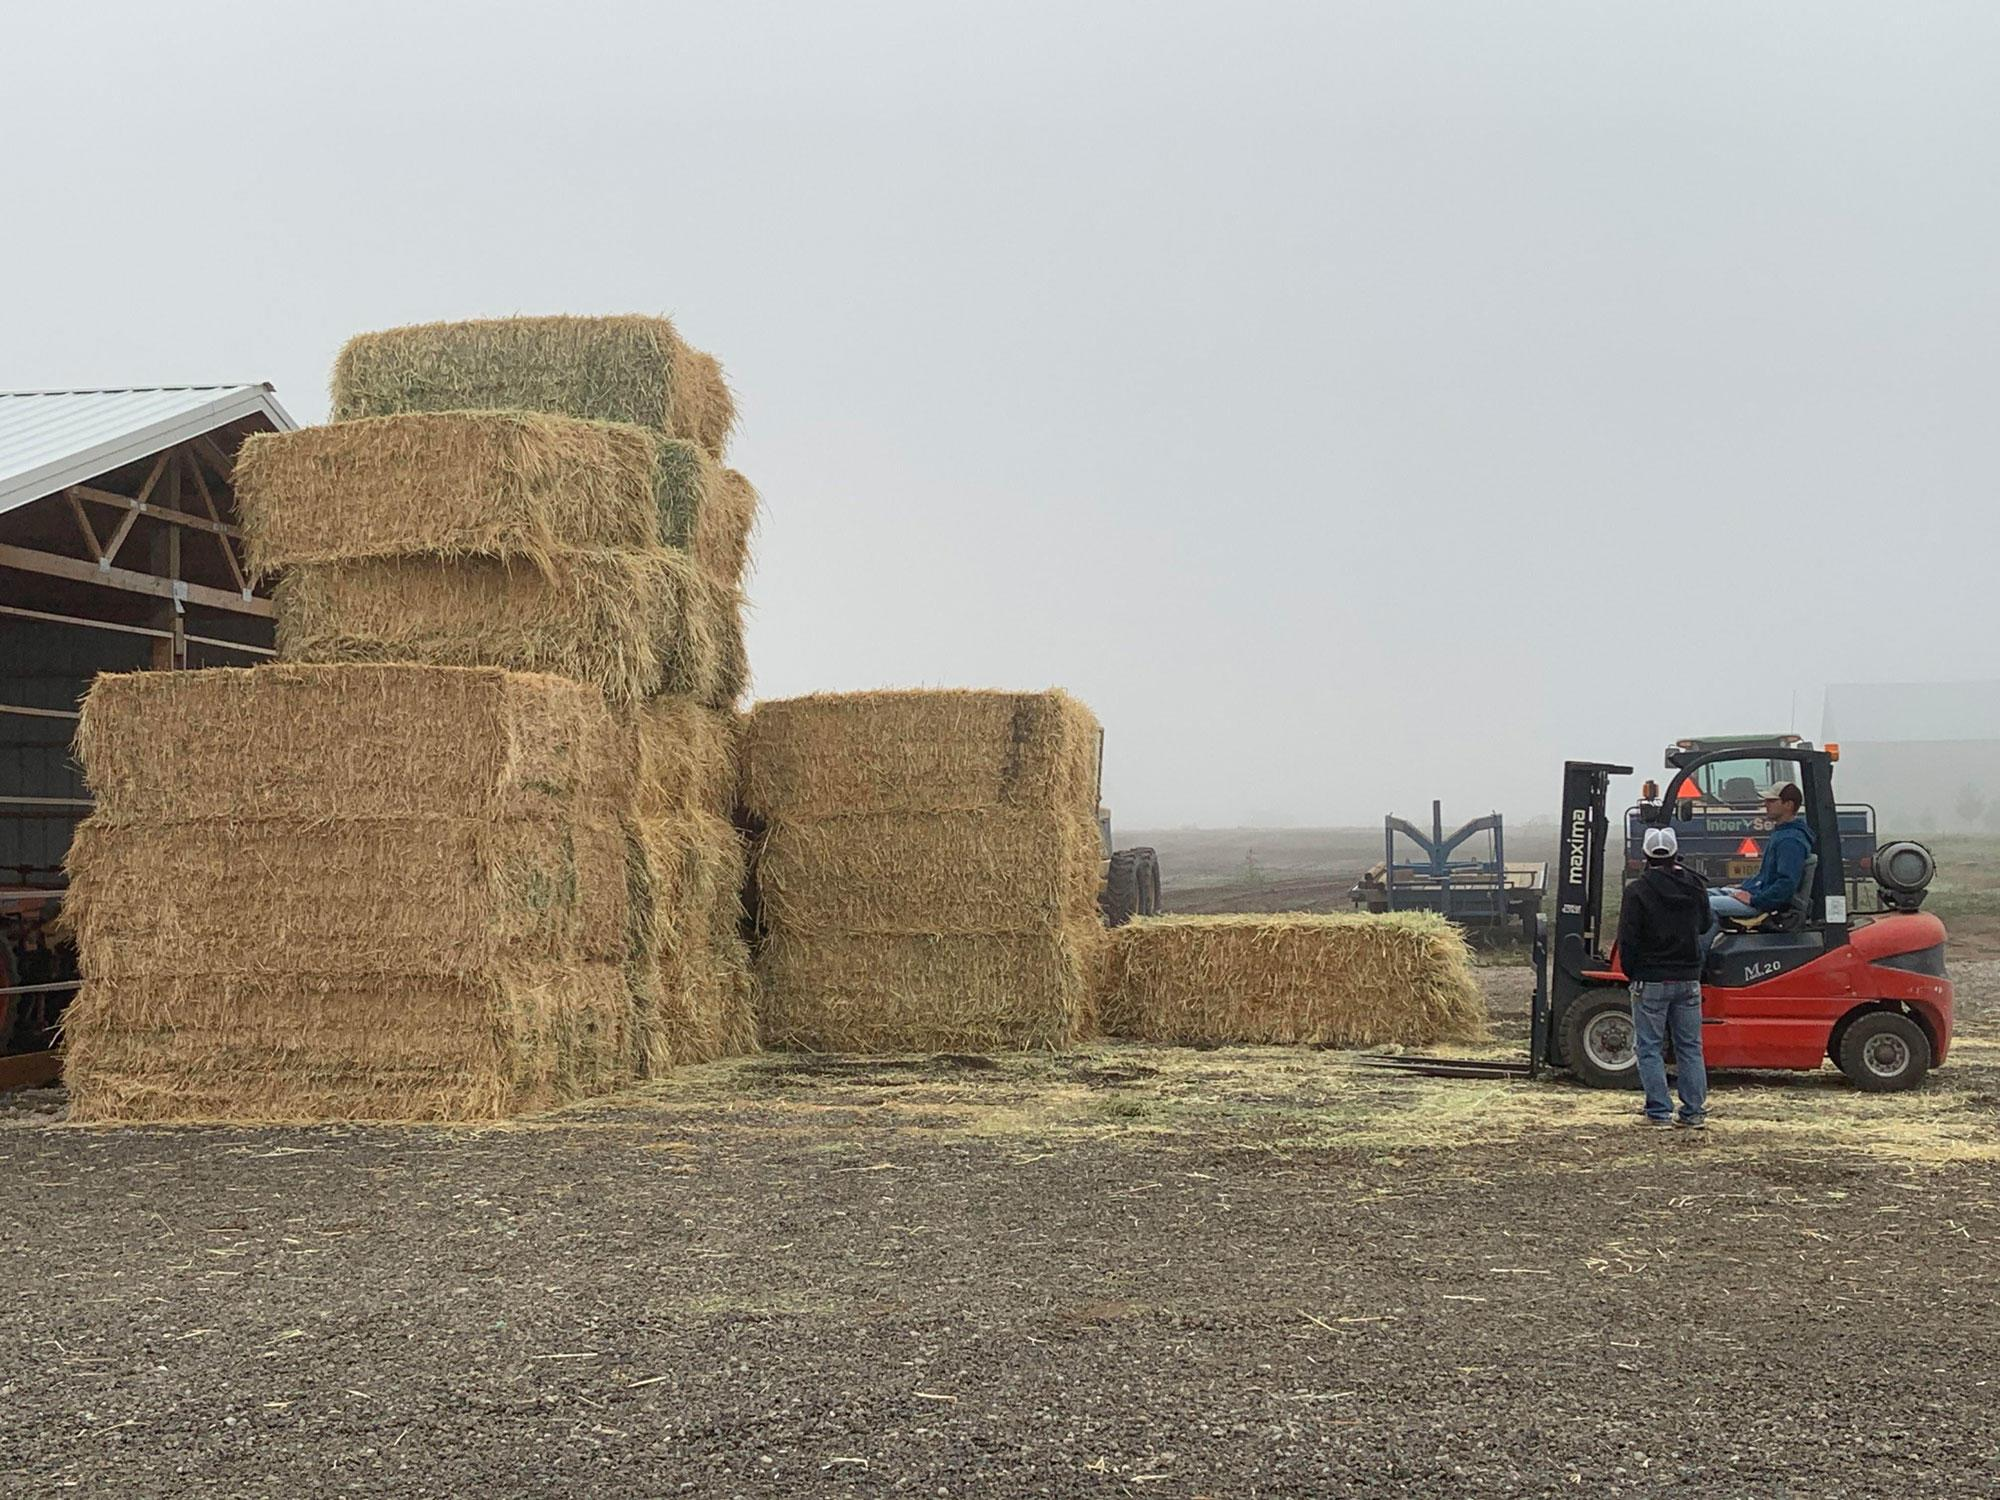 Donated hay stacked at the North Willamette Research and Extension Center.